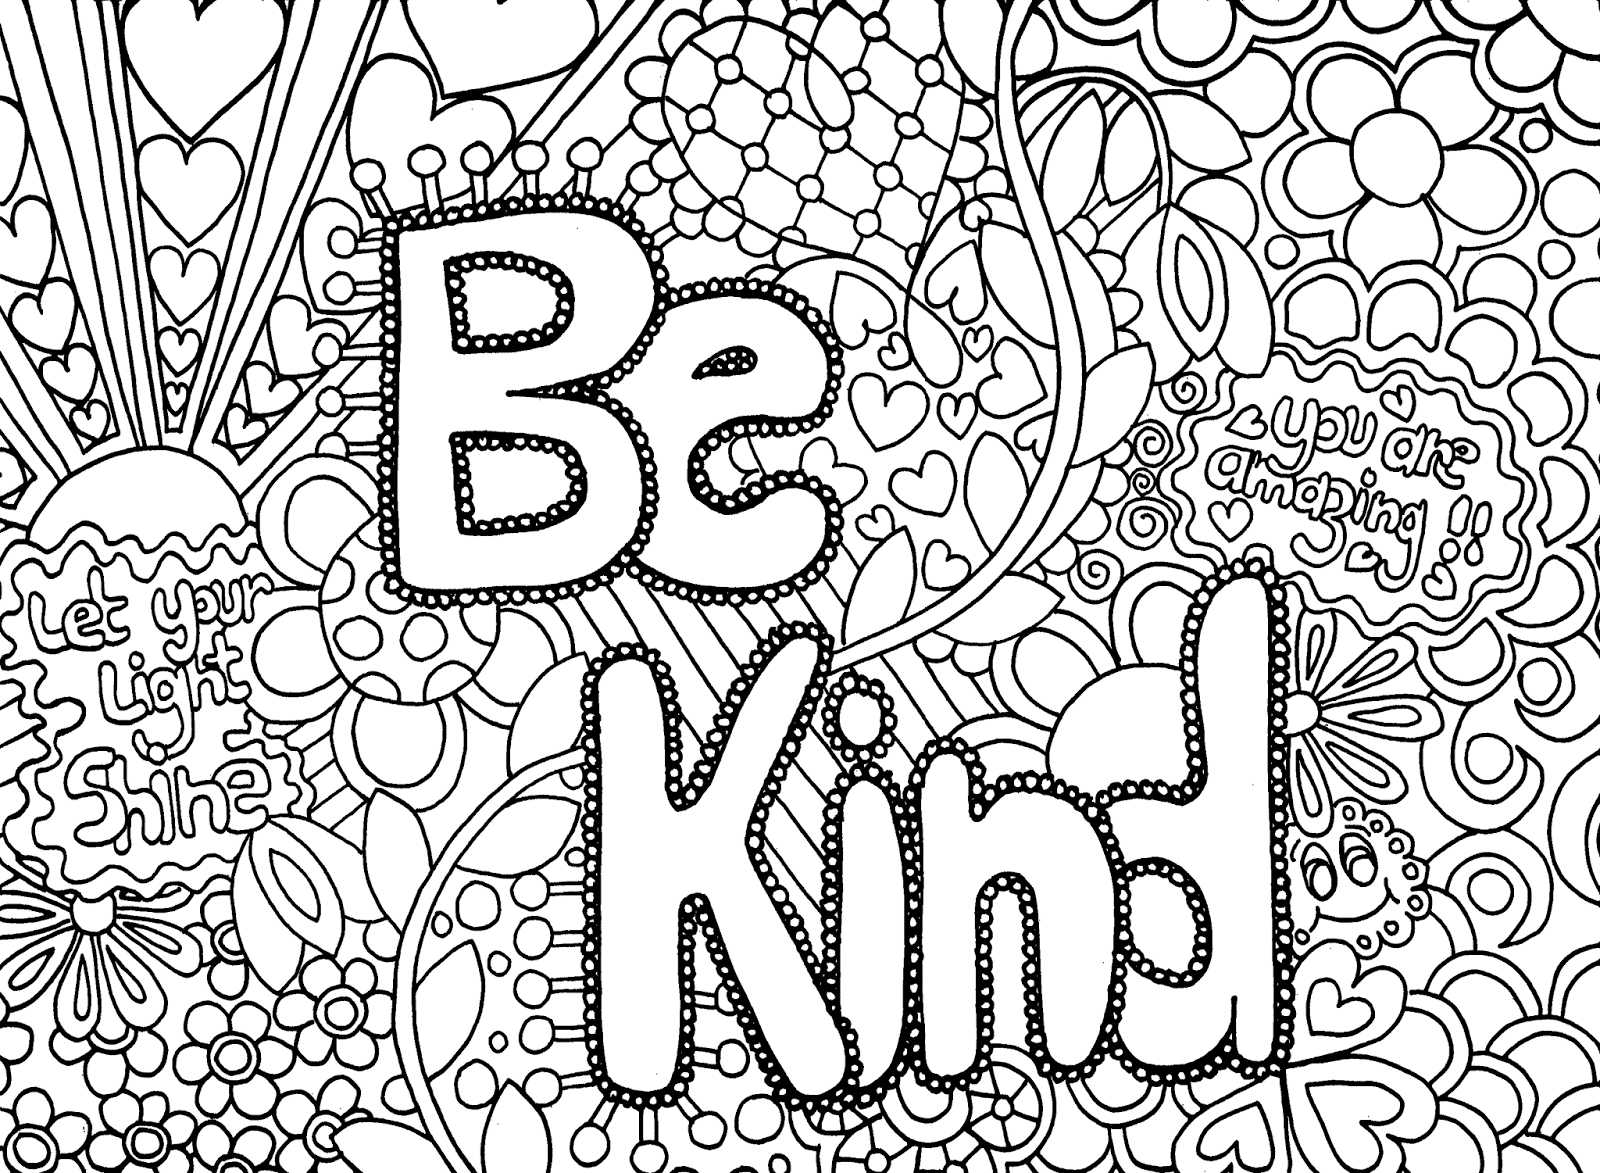 Coloring Pages Advanced Coloring Pages For Older Kids 1000 images about coloring pages on pinterest princess search and pages